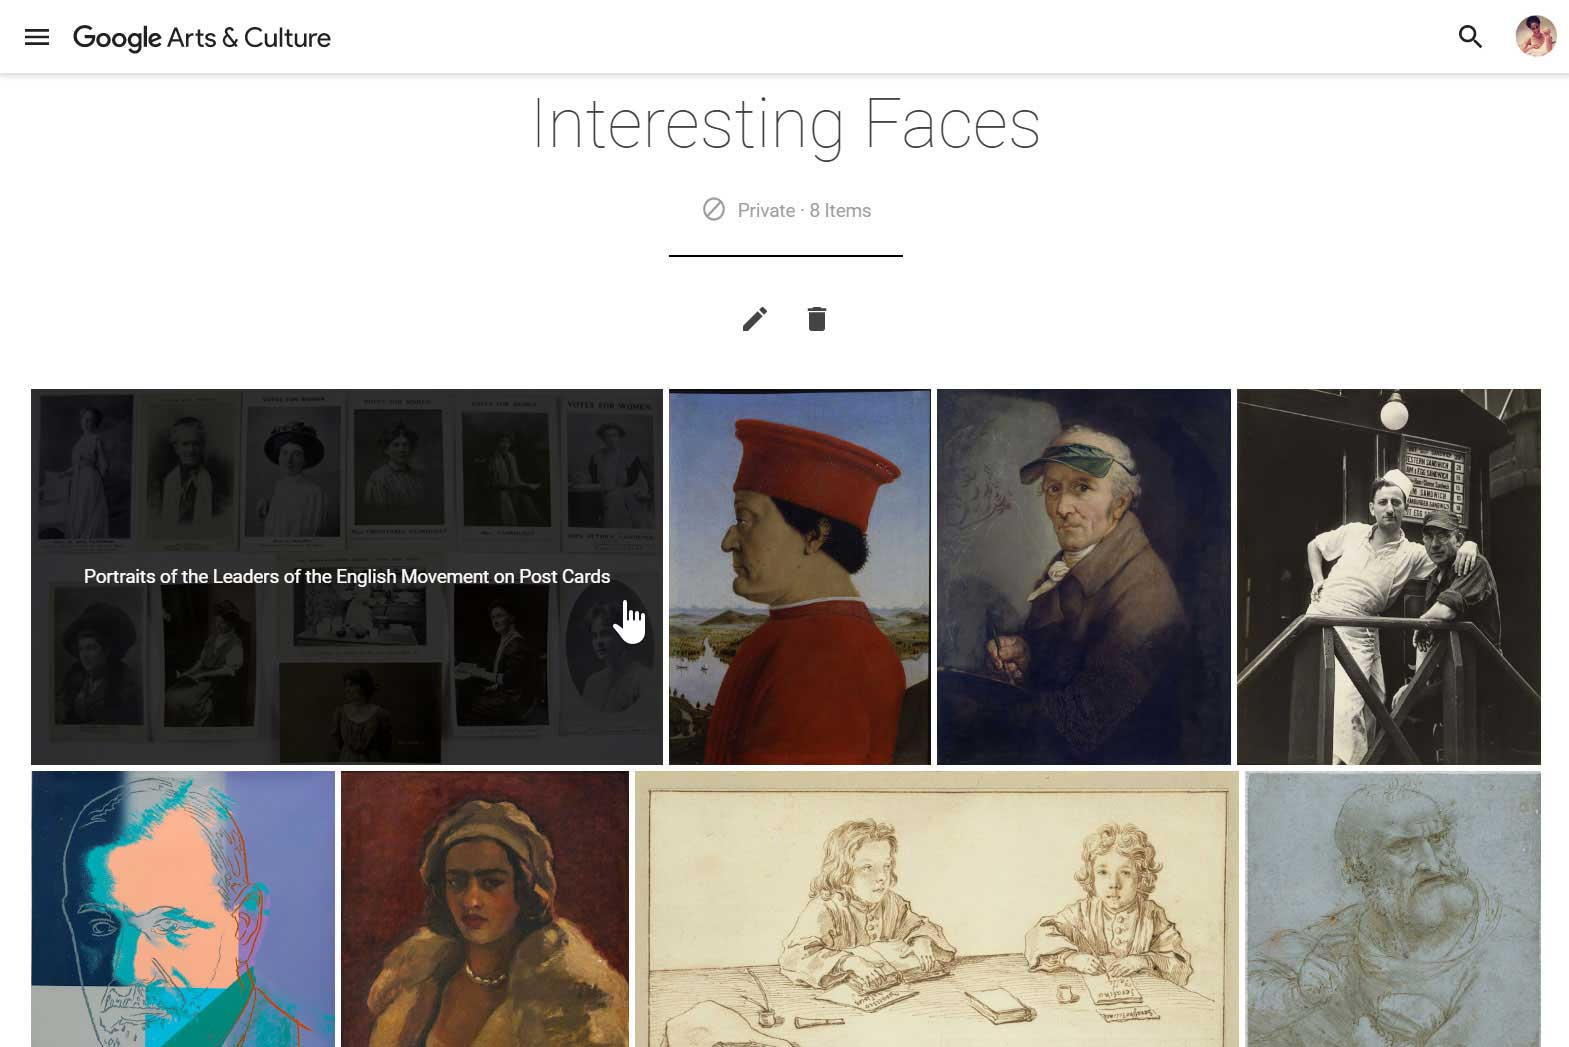 Google Art Projects favorites gallery